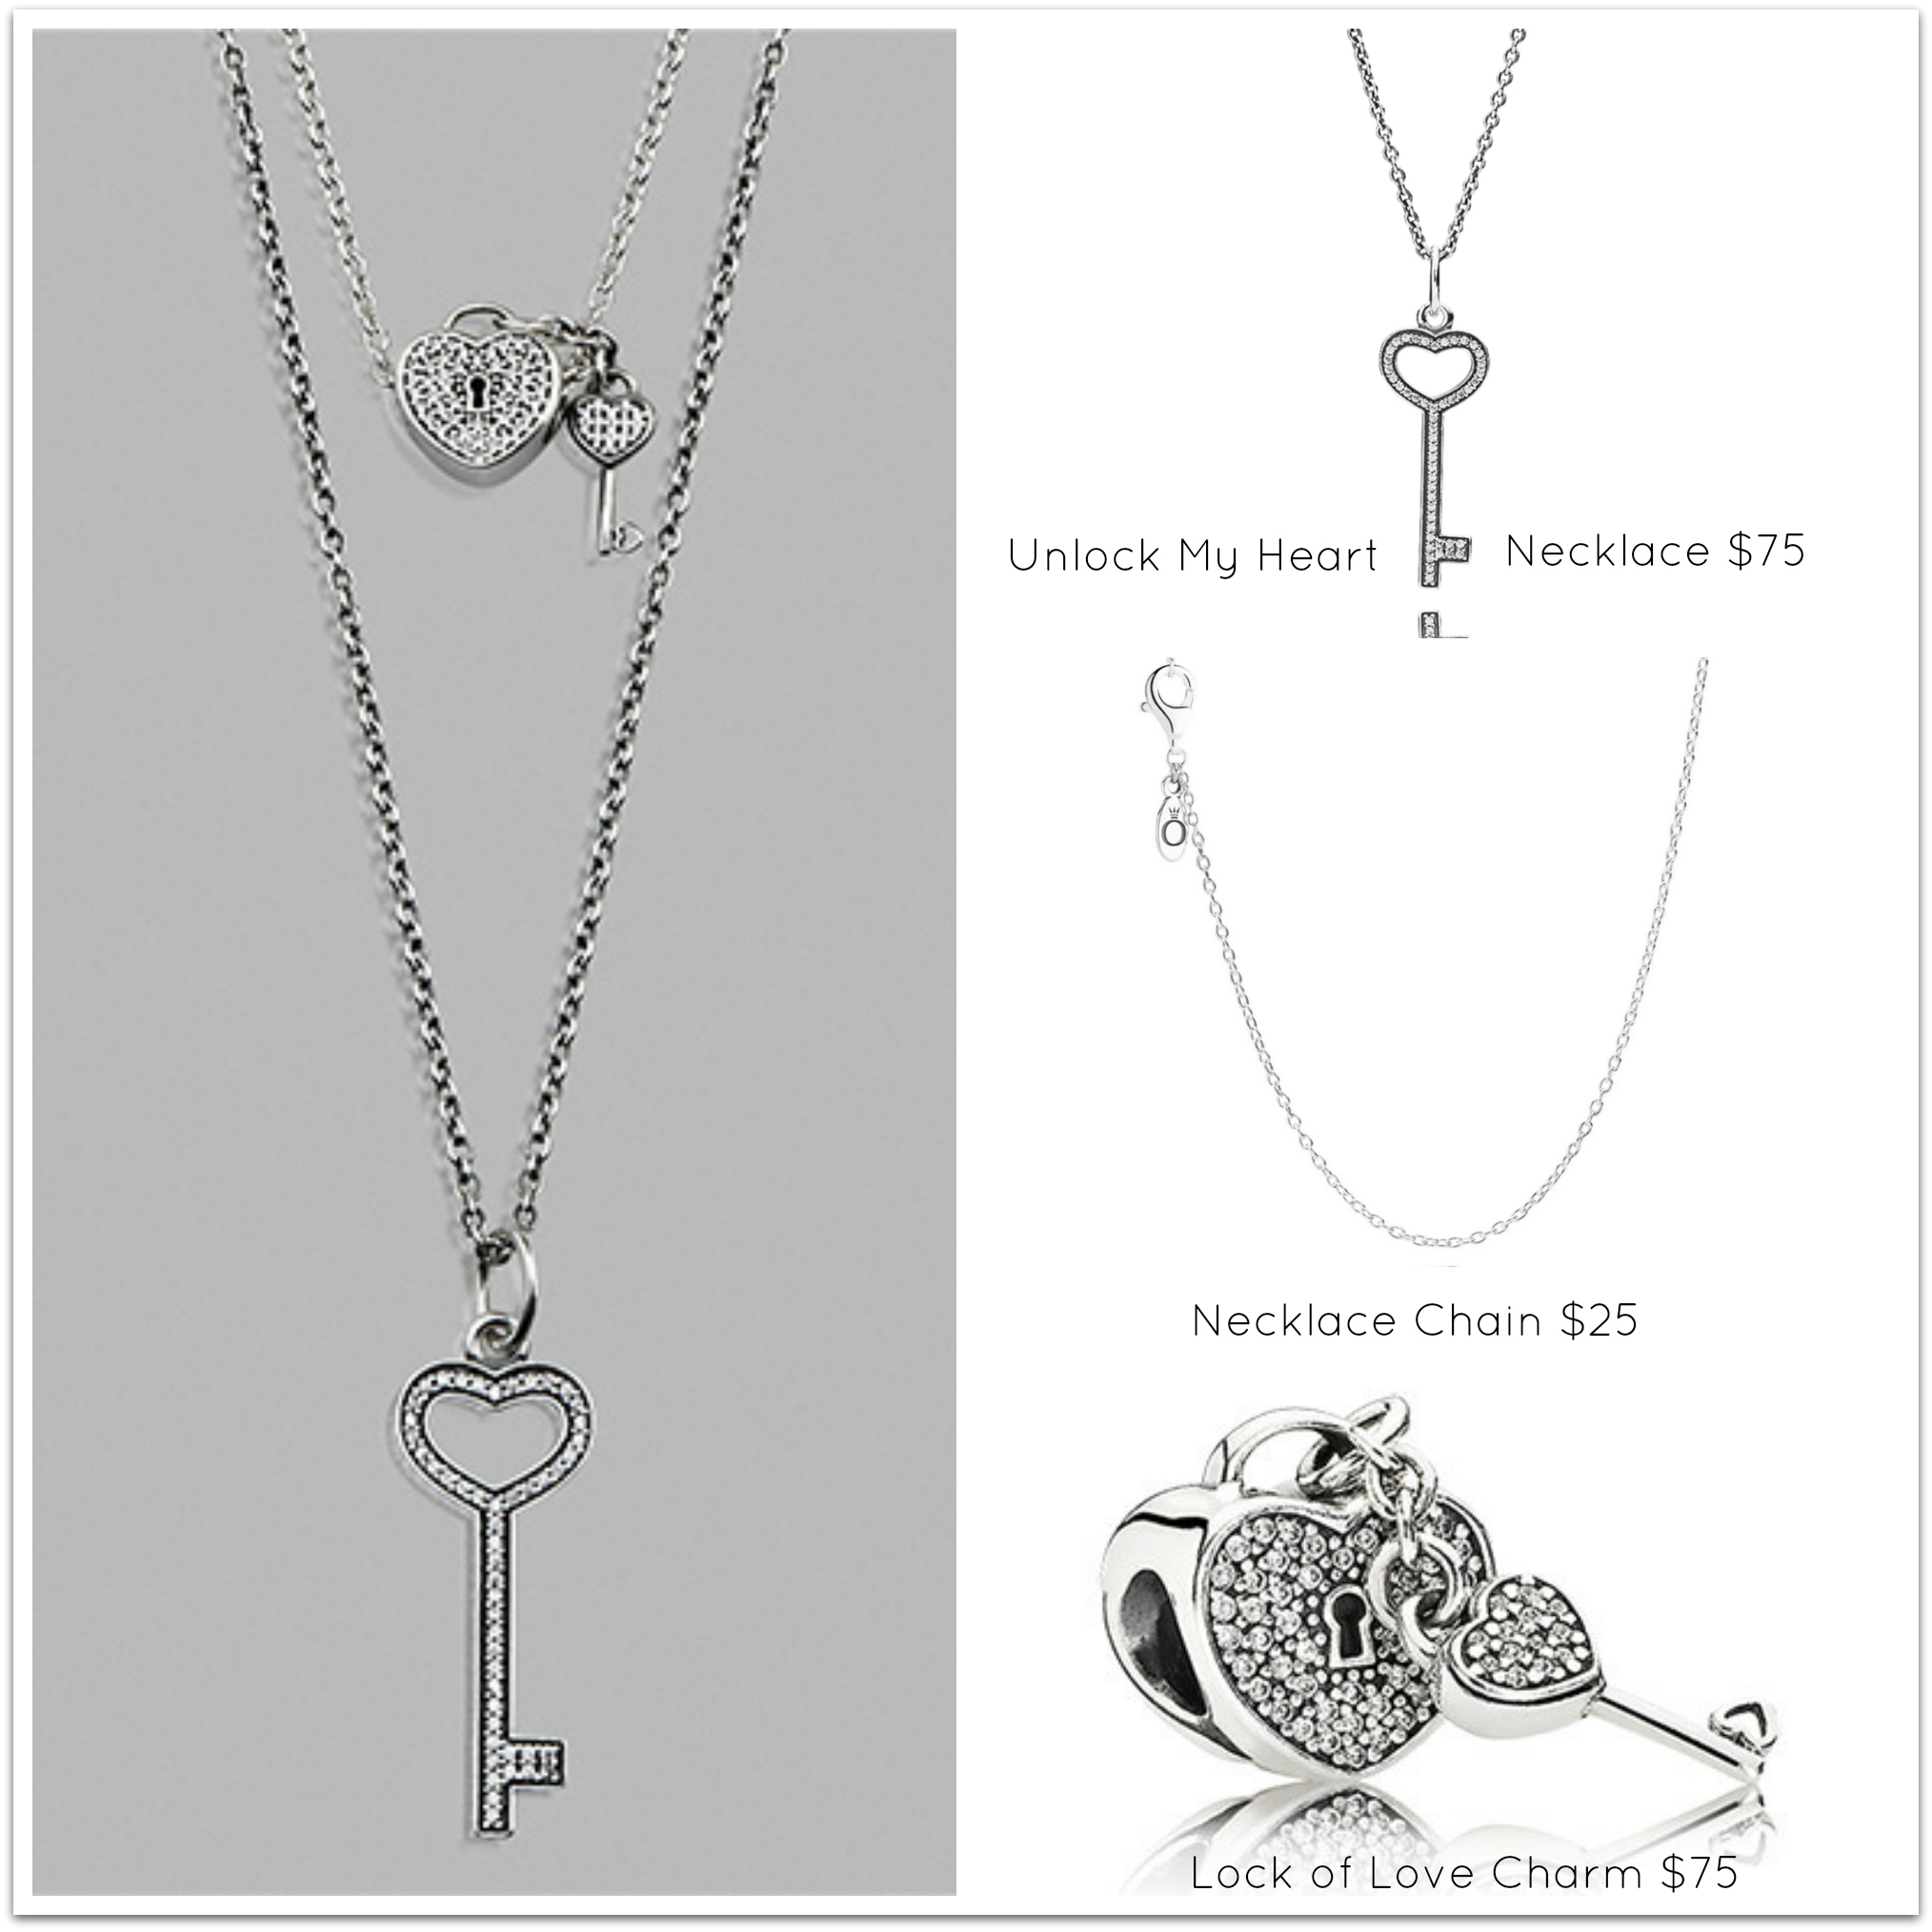 Where Can I Buy Pandora Heart Key Necklace 94716 4edbf In 2020 Pandora Lockets Heart Key Necklaces (View 9 of 25)